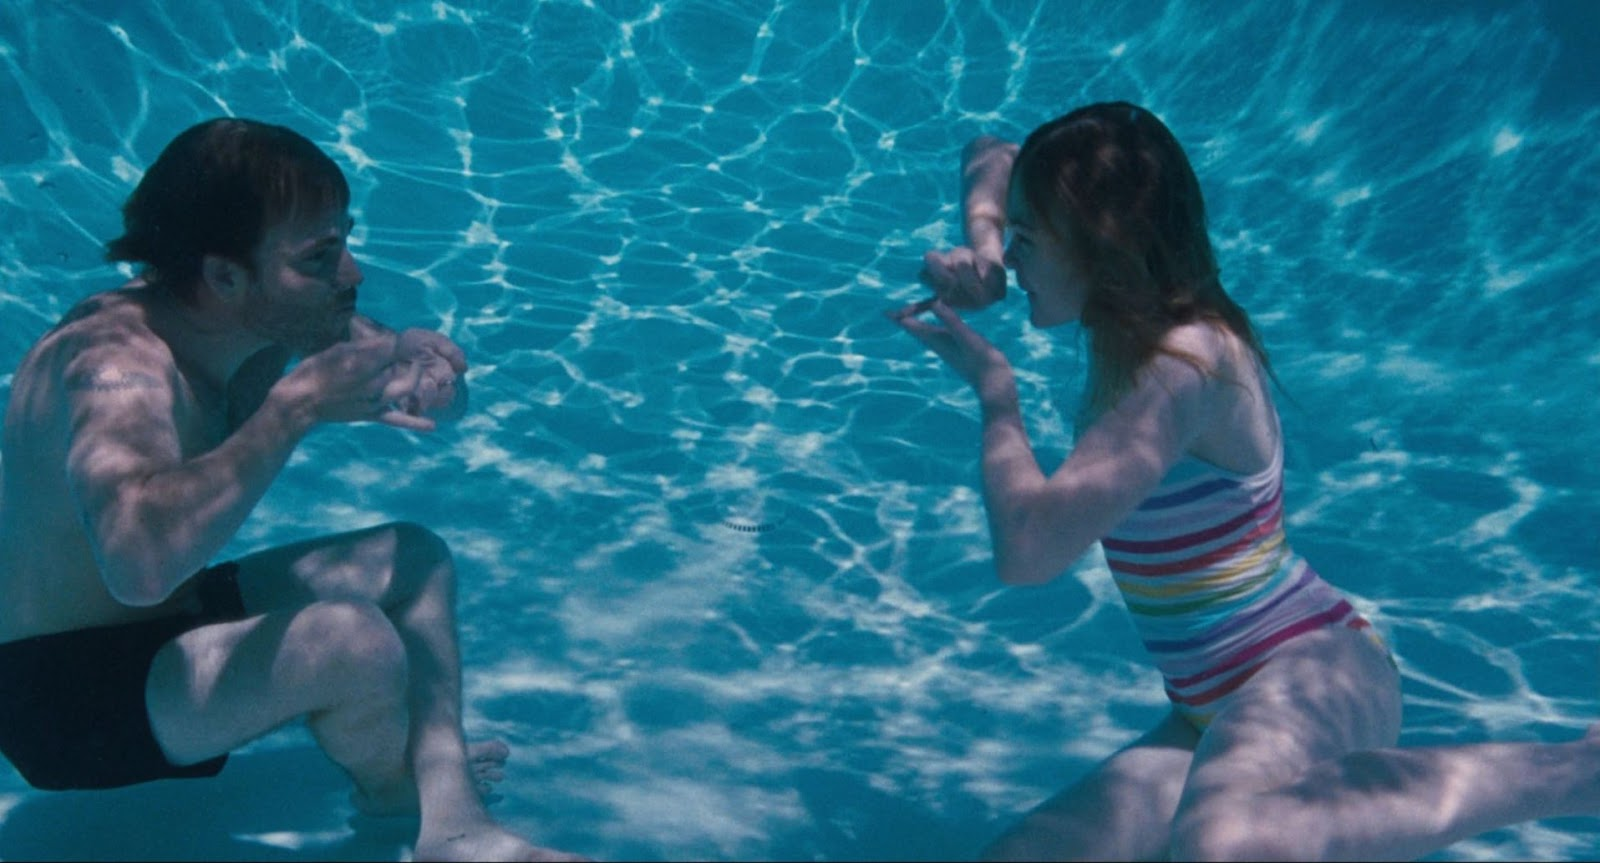 Johnny and Cleo facing each other underwater as they are pretending to have a tea party by mimicking using tea cups and dishes. Johnny is placed to the left of the film still while Cleo is more on the right. Johnny wears black swim trunks and Cleo wears a colourful bathing suit consisting of variations of blue, pink, red, yellow and green hues in horizontal stripes. Johnny is sitting at the bottom of the pool with his legs crossed. Cleo is sitting with her legs folded over on her left side as she leans her body more to her right for balance.